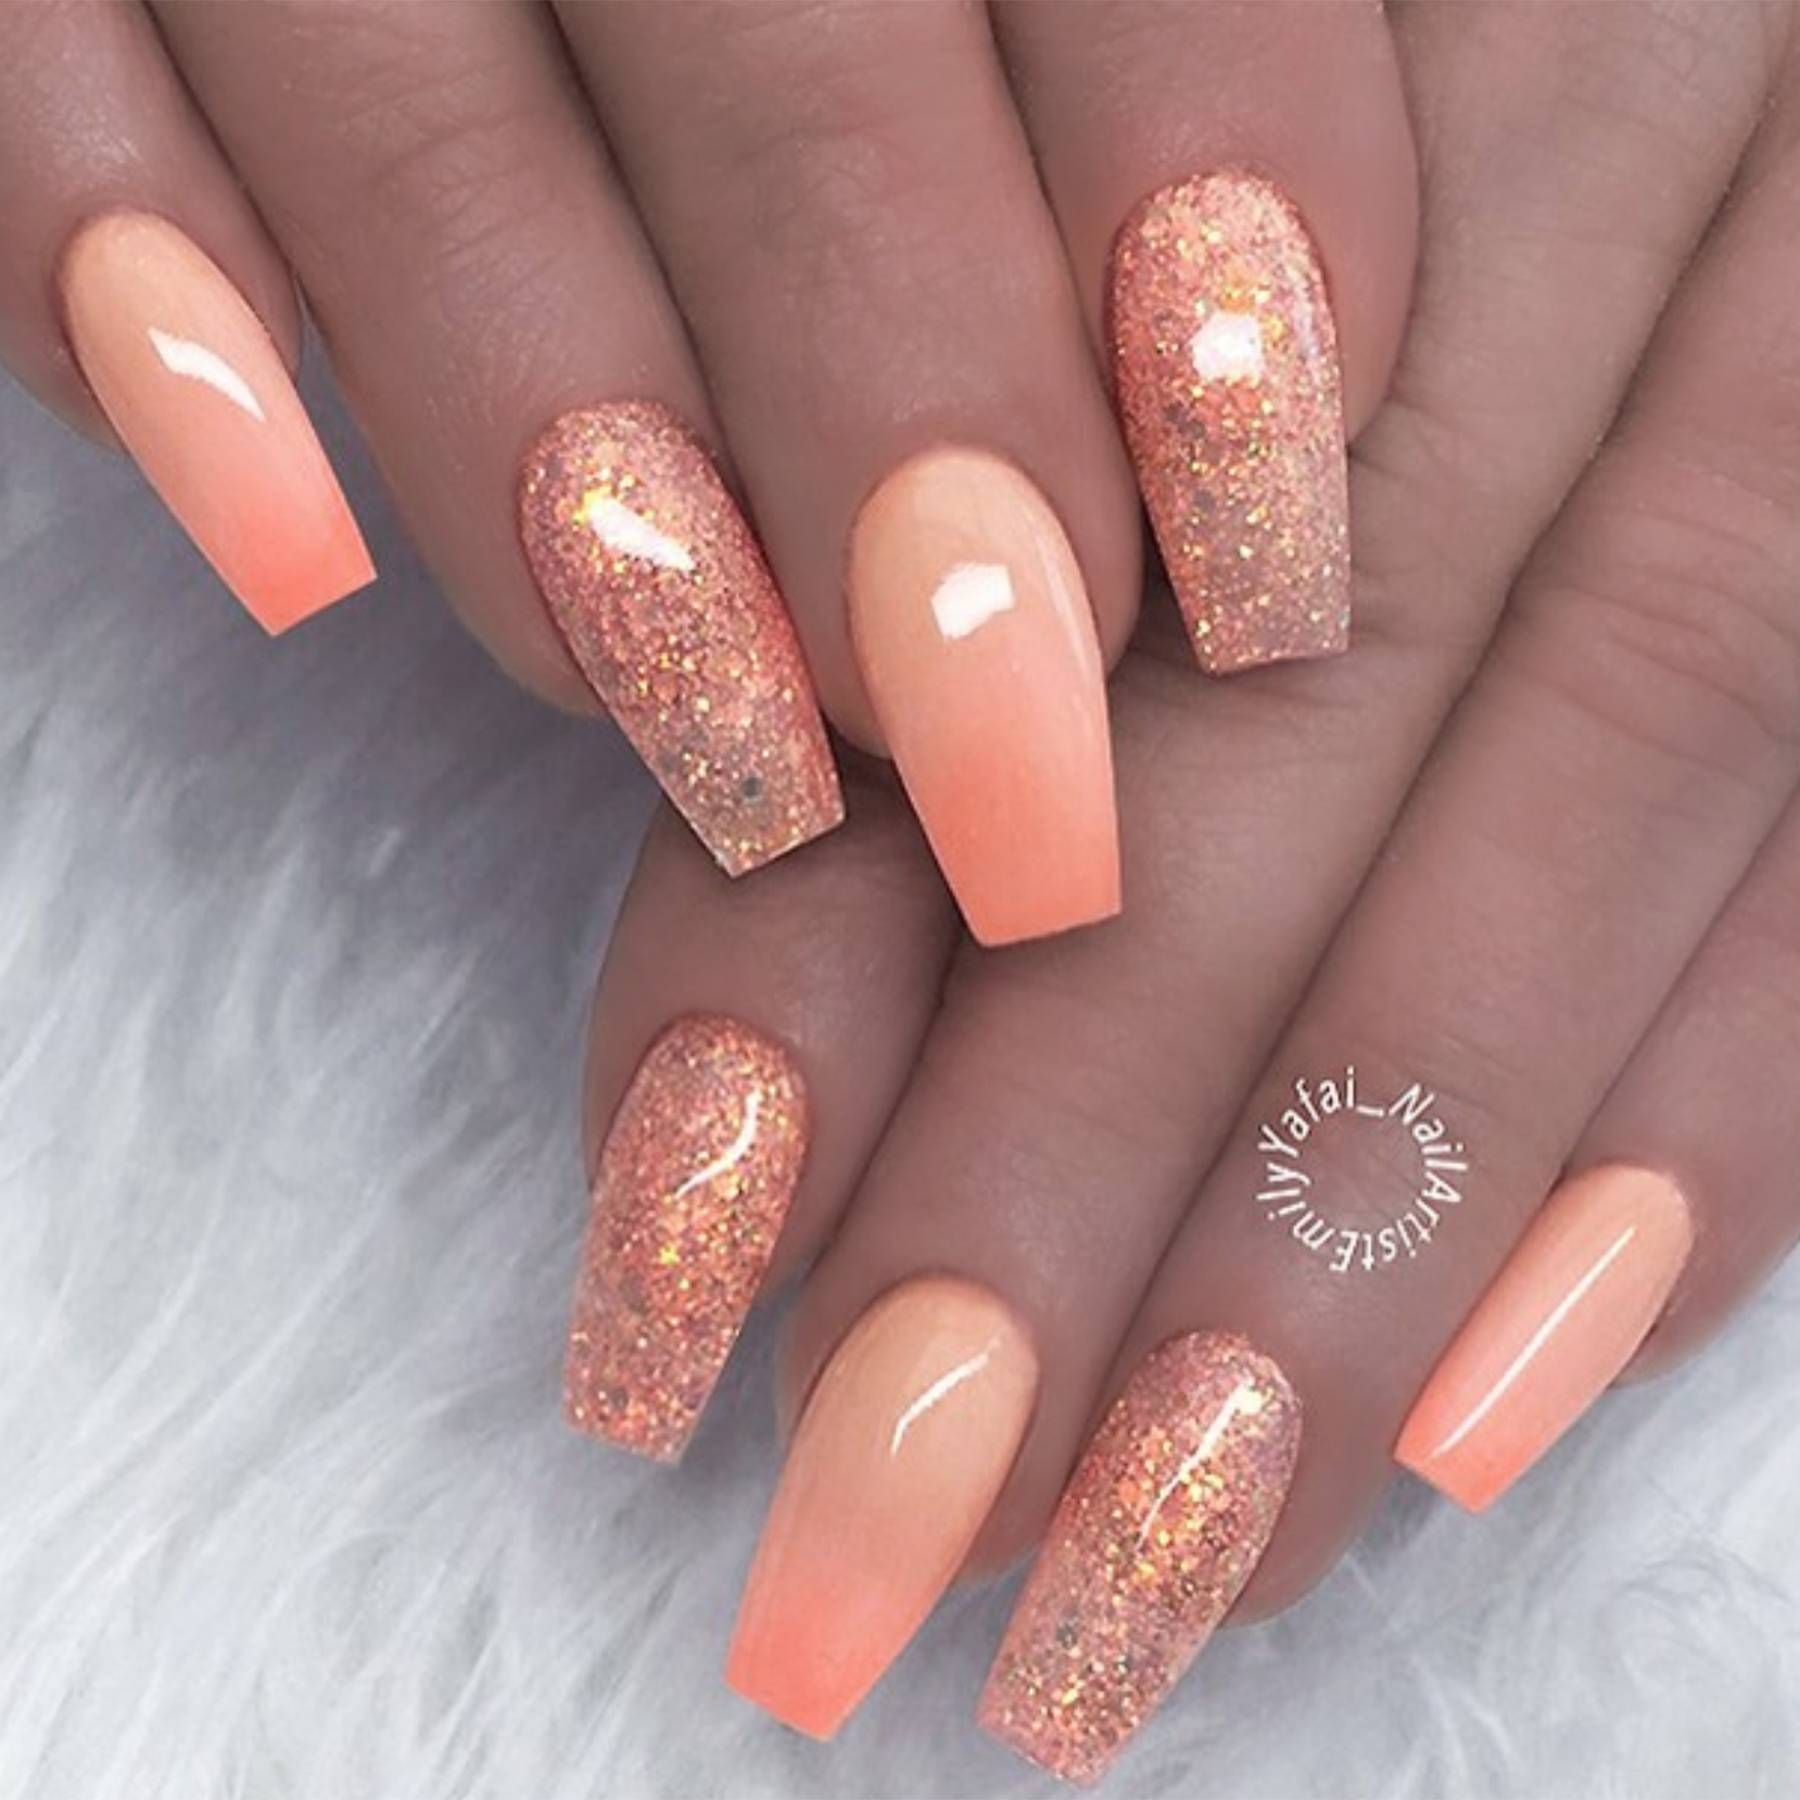 Everyone Is Obsessed With This Ombre French Mani Peach Acrylic Nails Ombre Nails Glitter Ombre Nail Designs